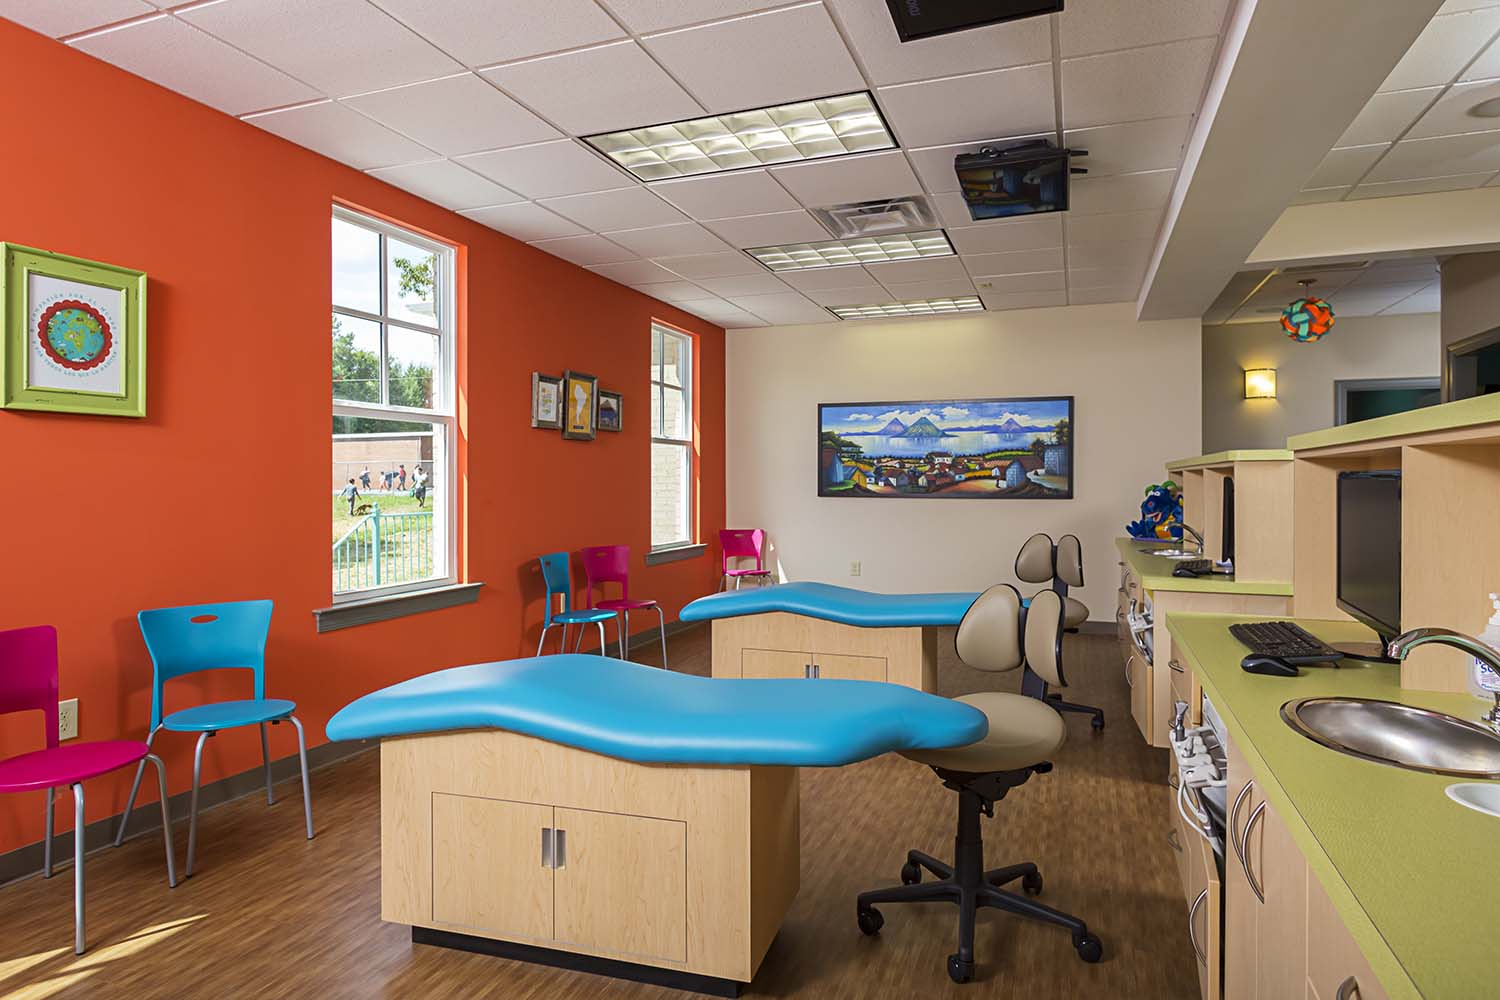 Dental care for kids Shelby Pediatric Dentist Birmingham AL Homepage Office 2